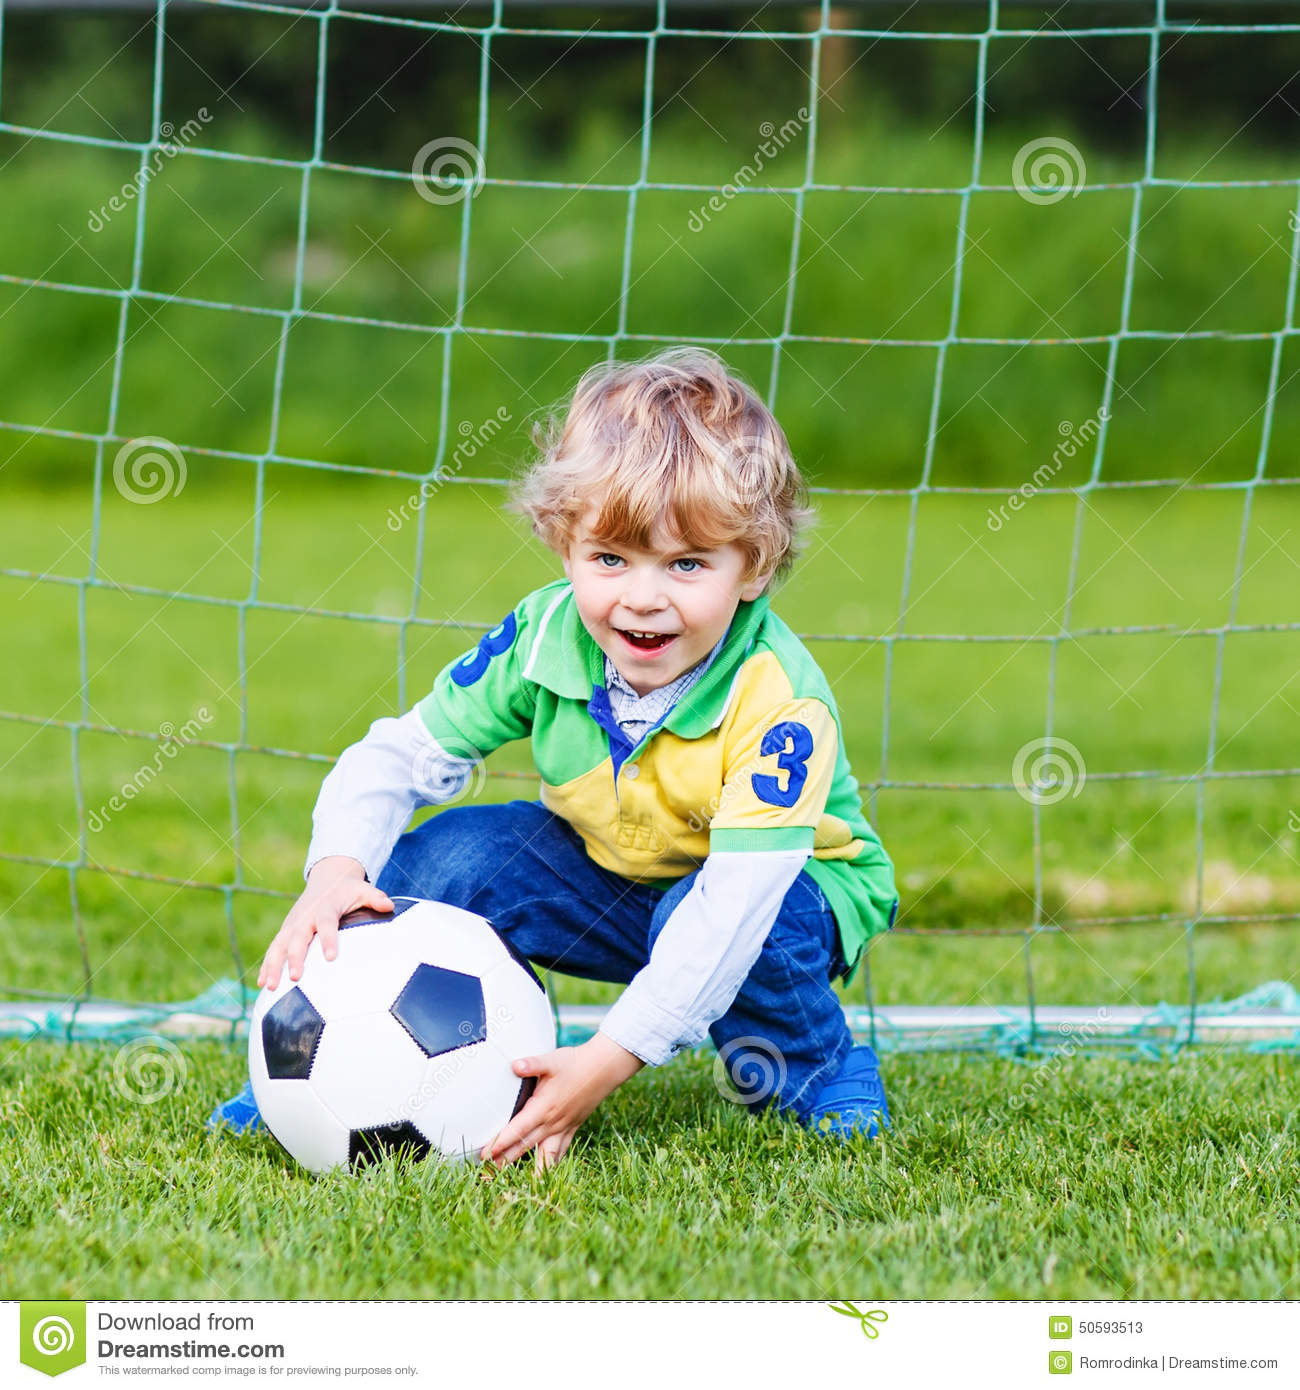 Young Children Playing Football Outdoors Stock Image ...